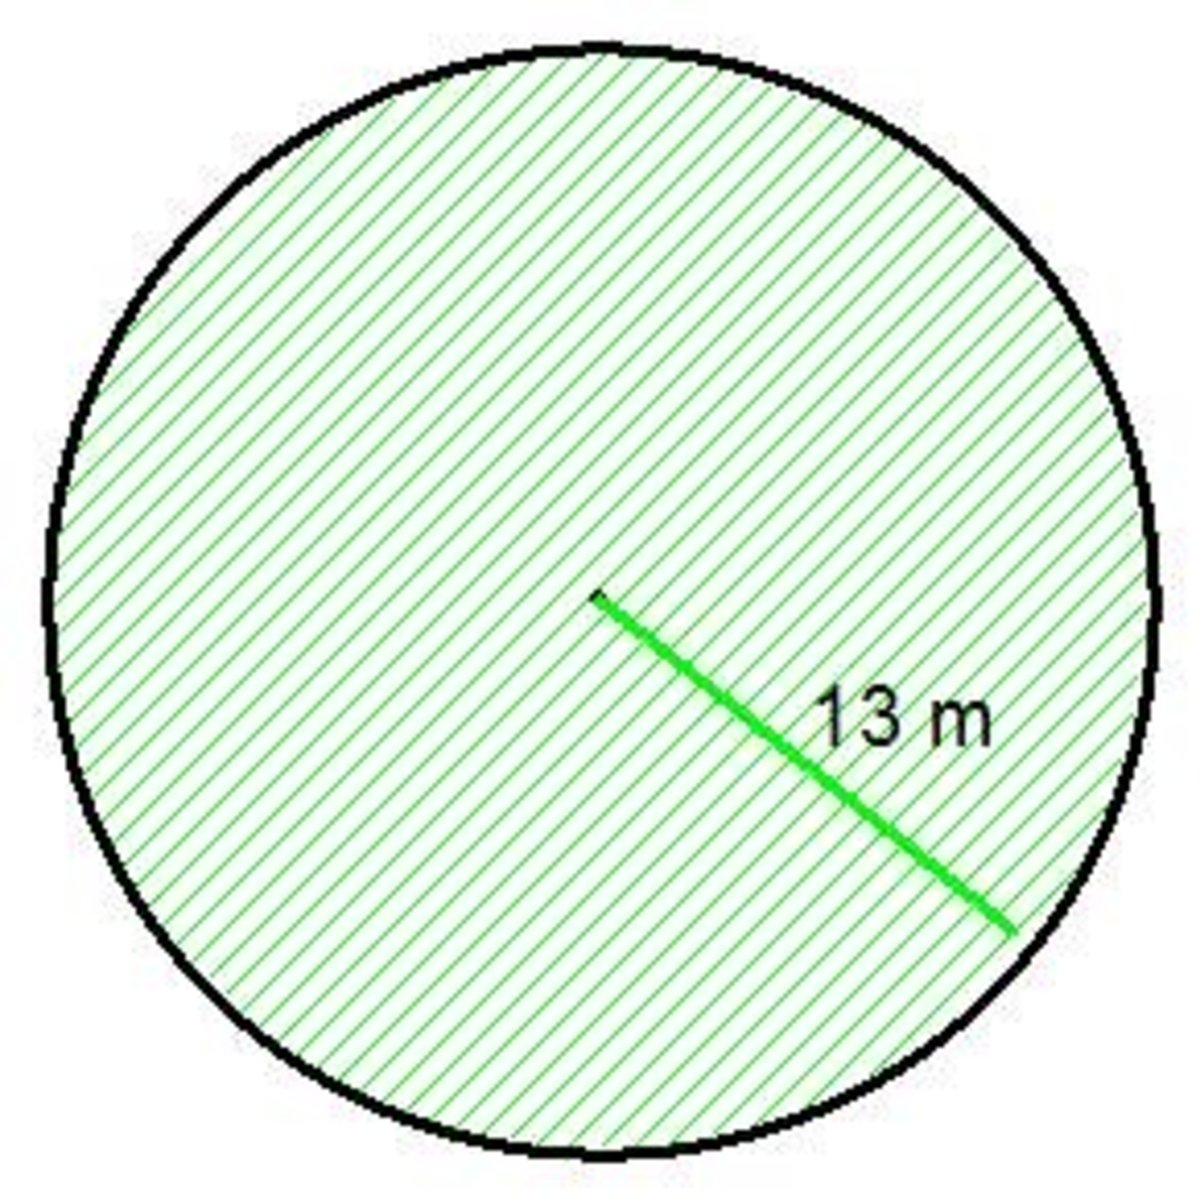 Math Help How To Calculate The Area Of Circle And Get An